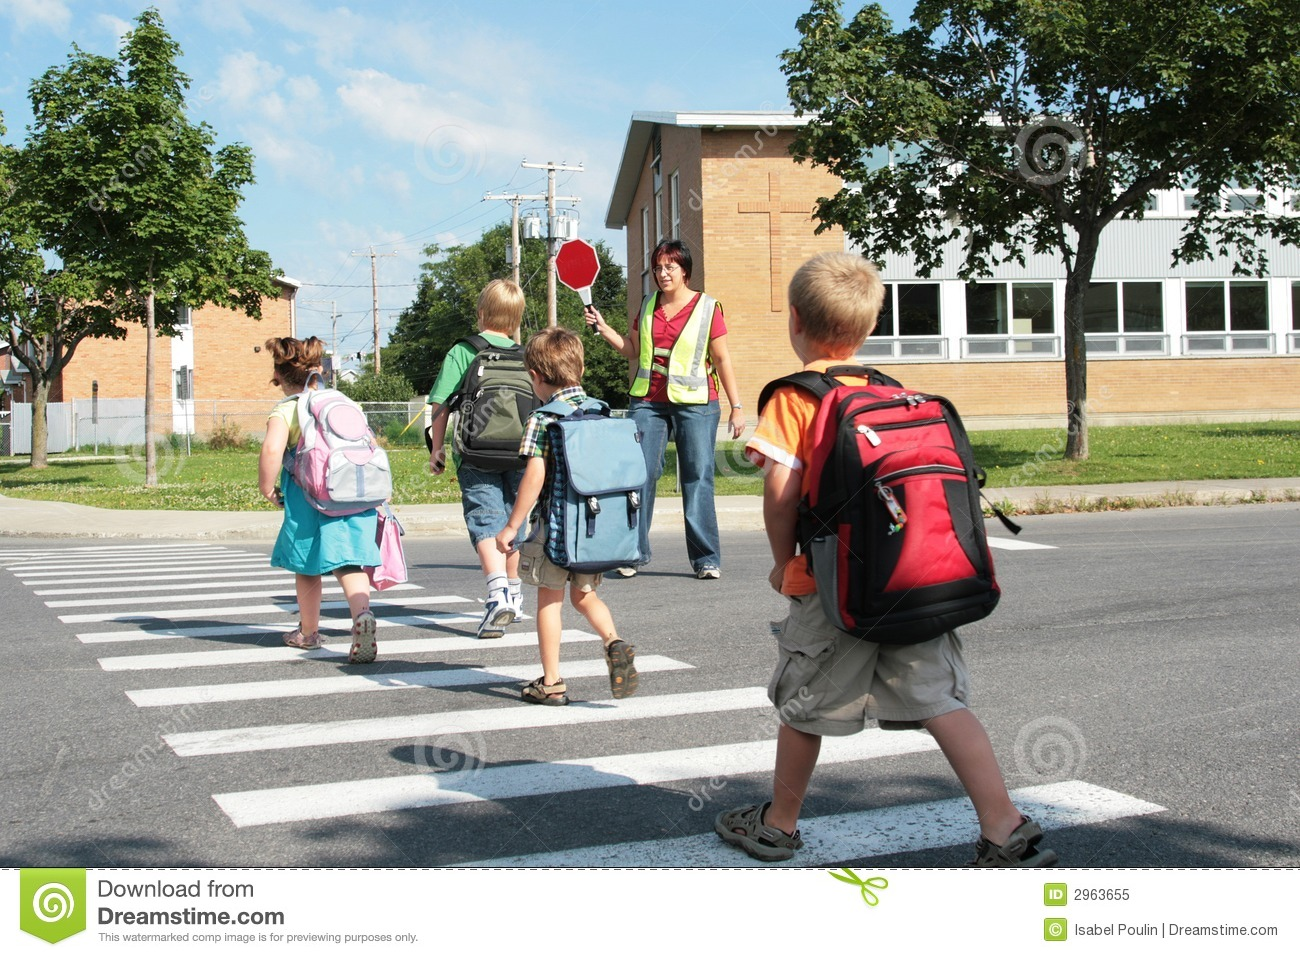 ... on their way to school under the watchful eye of a crossing guard